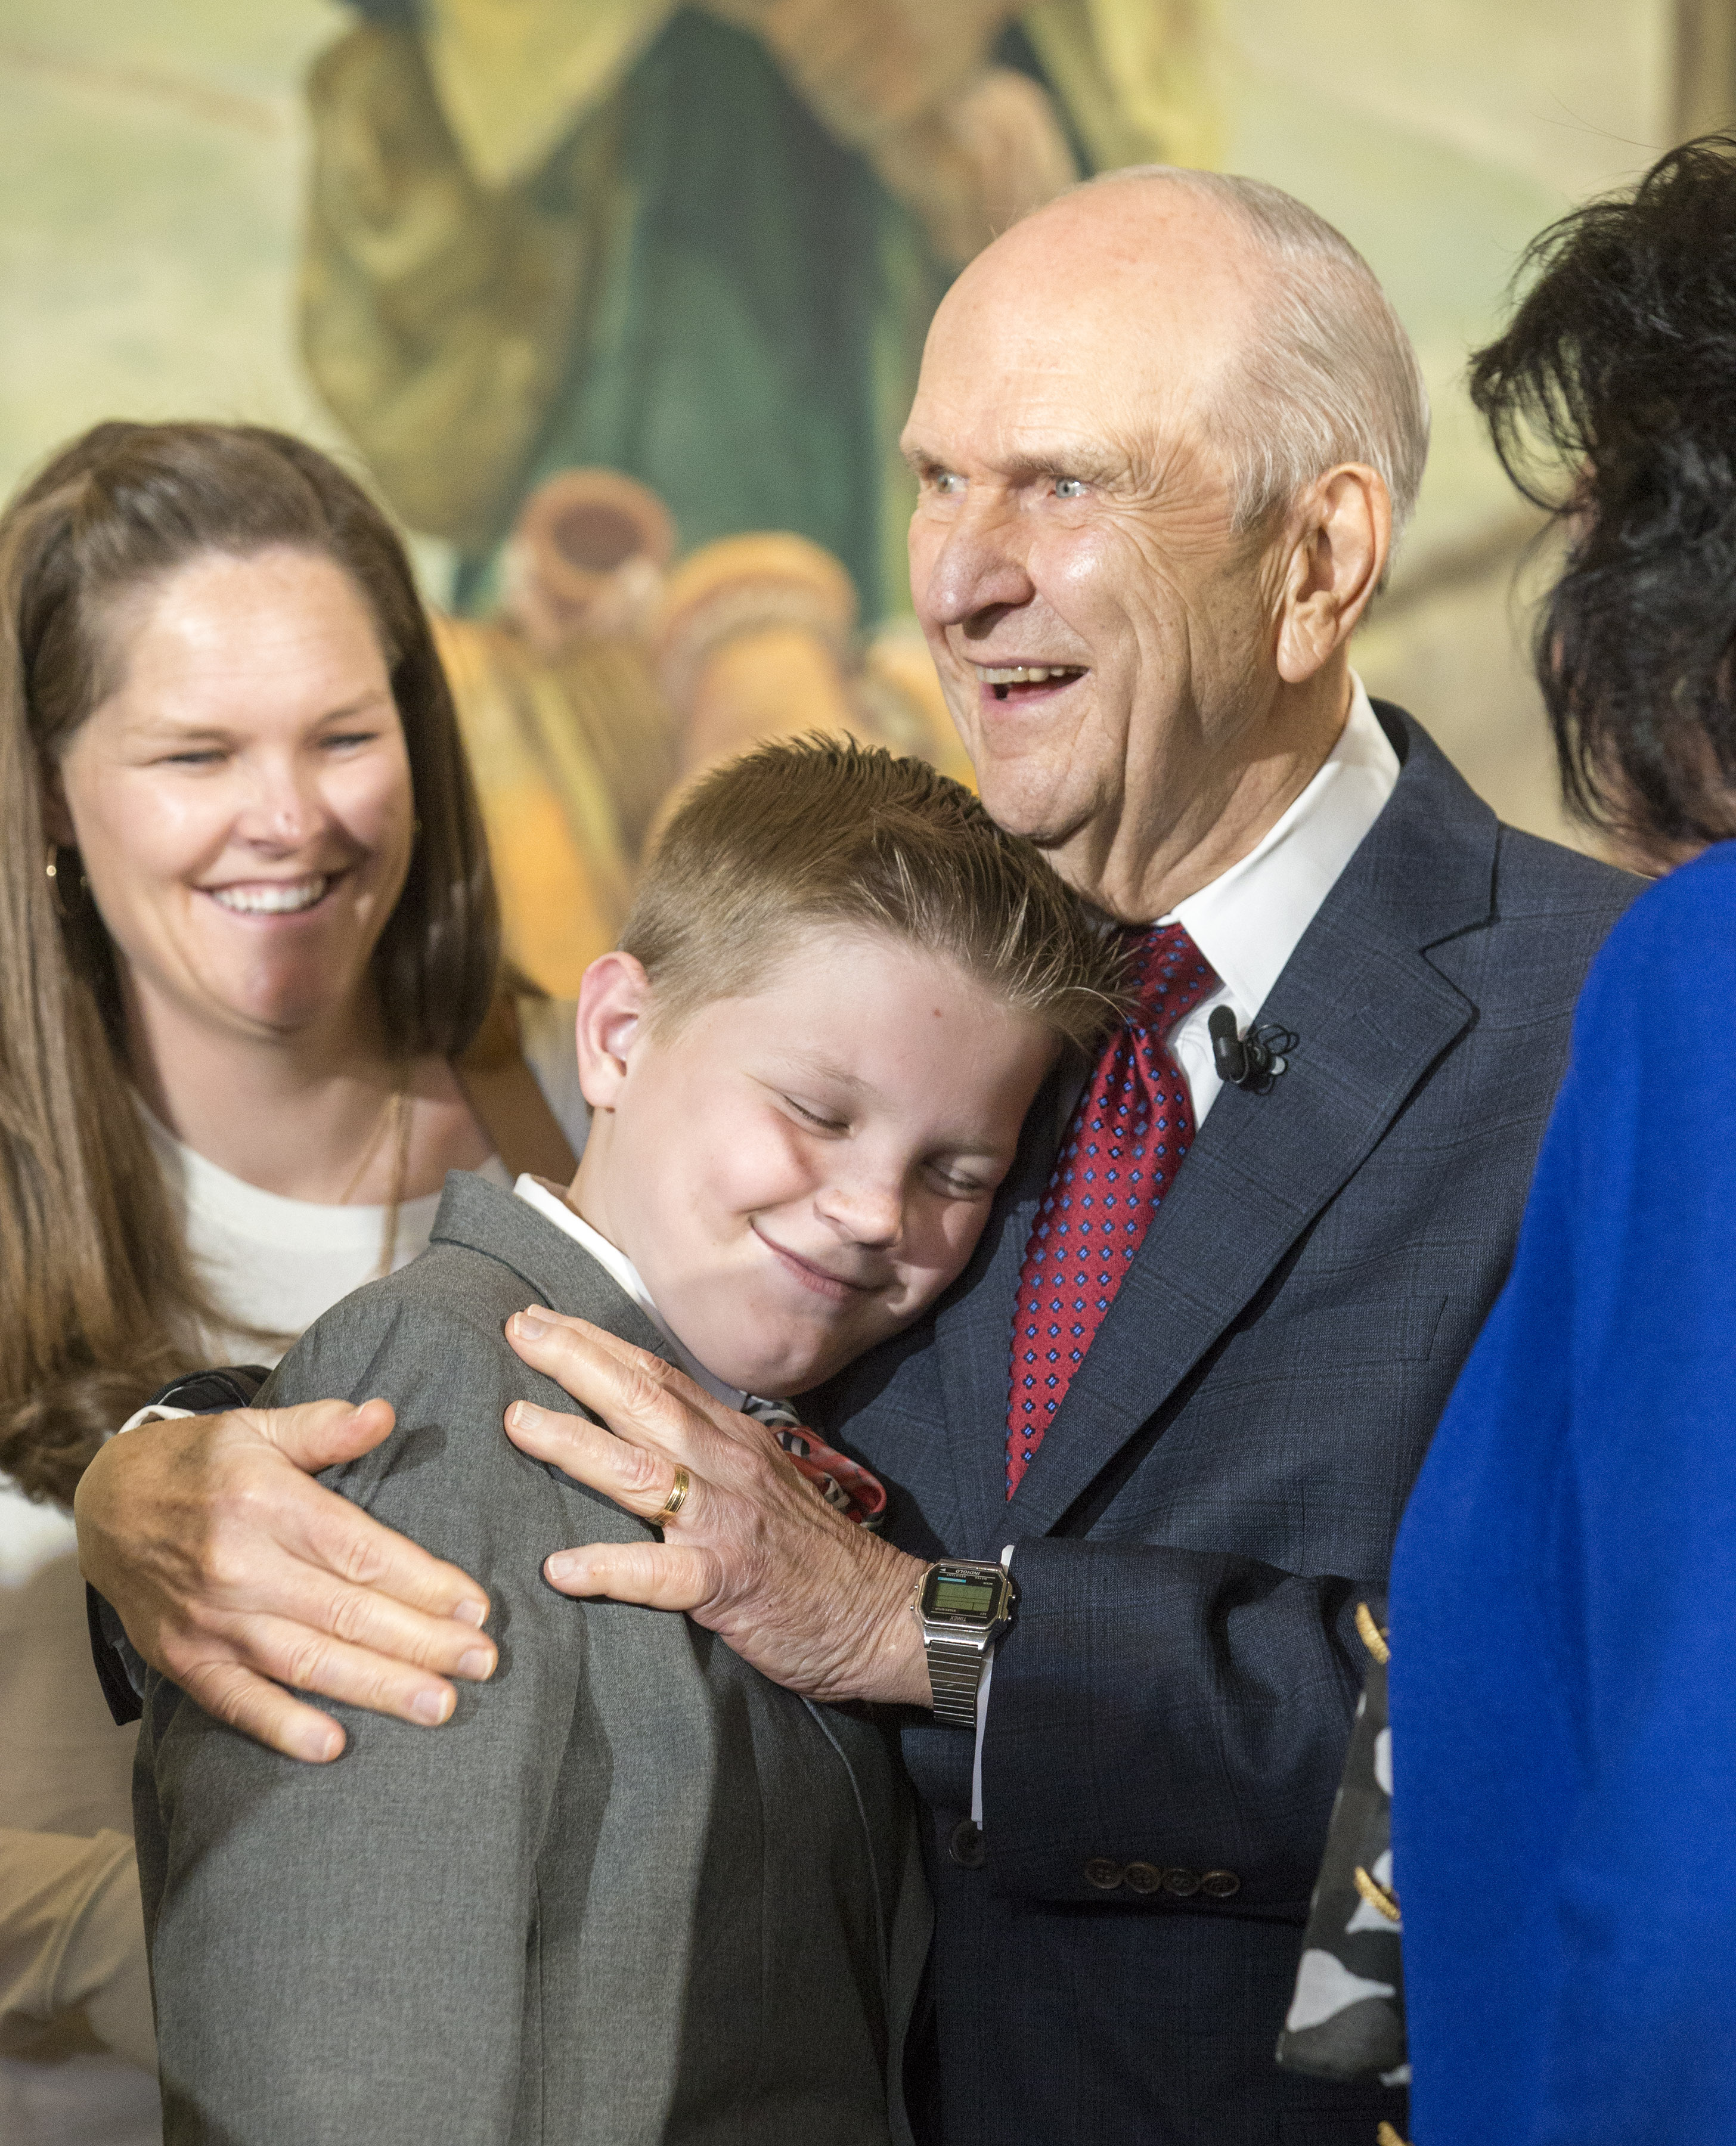 President Russell M. Nelson the 17th President of The Church of Jesus Christ of Latter-day Saints receive hugs from family members after he and his councilors President Dallin H. Oaks, first counselor and President Henry B. Eyring, second counselor held a press conference at the church office building in Salt Lake City Utah on Tuesday, Jan. 16, 2018.